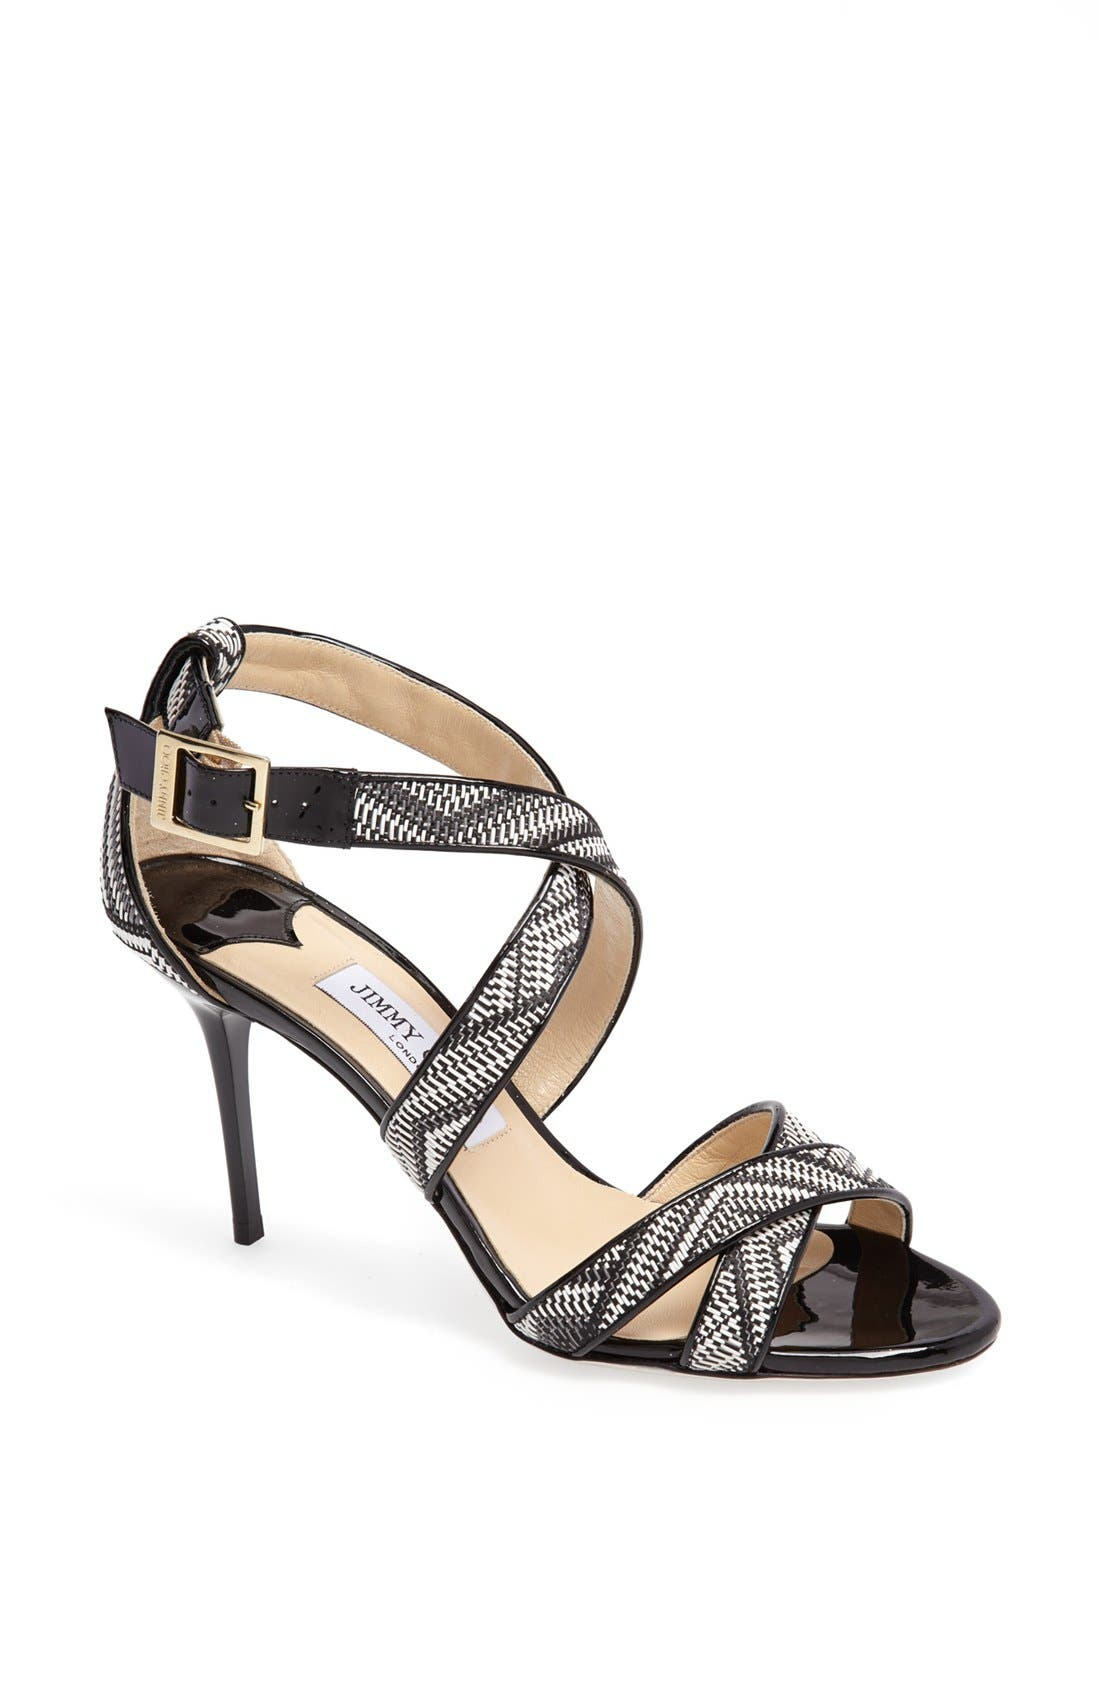 Alternate Image 1 Selected - Jimmy Choo 'Louise' Sandal